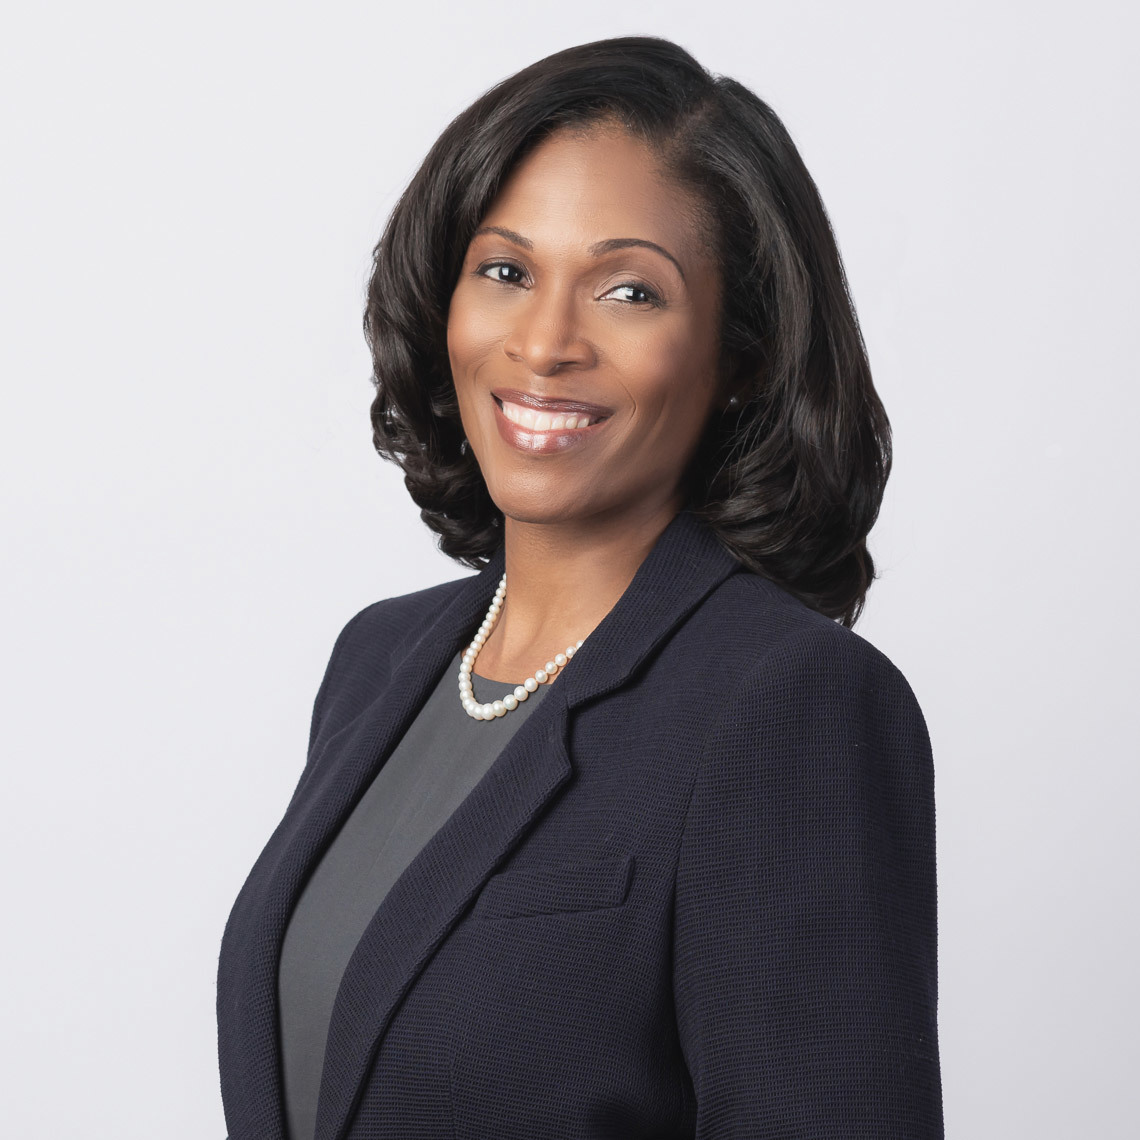 Photo of Kendra P. Norwood